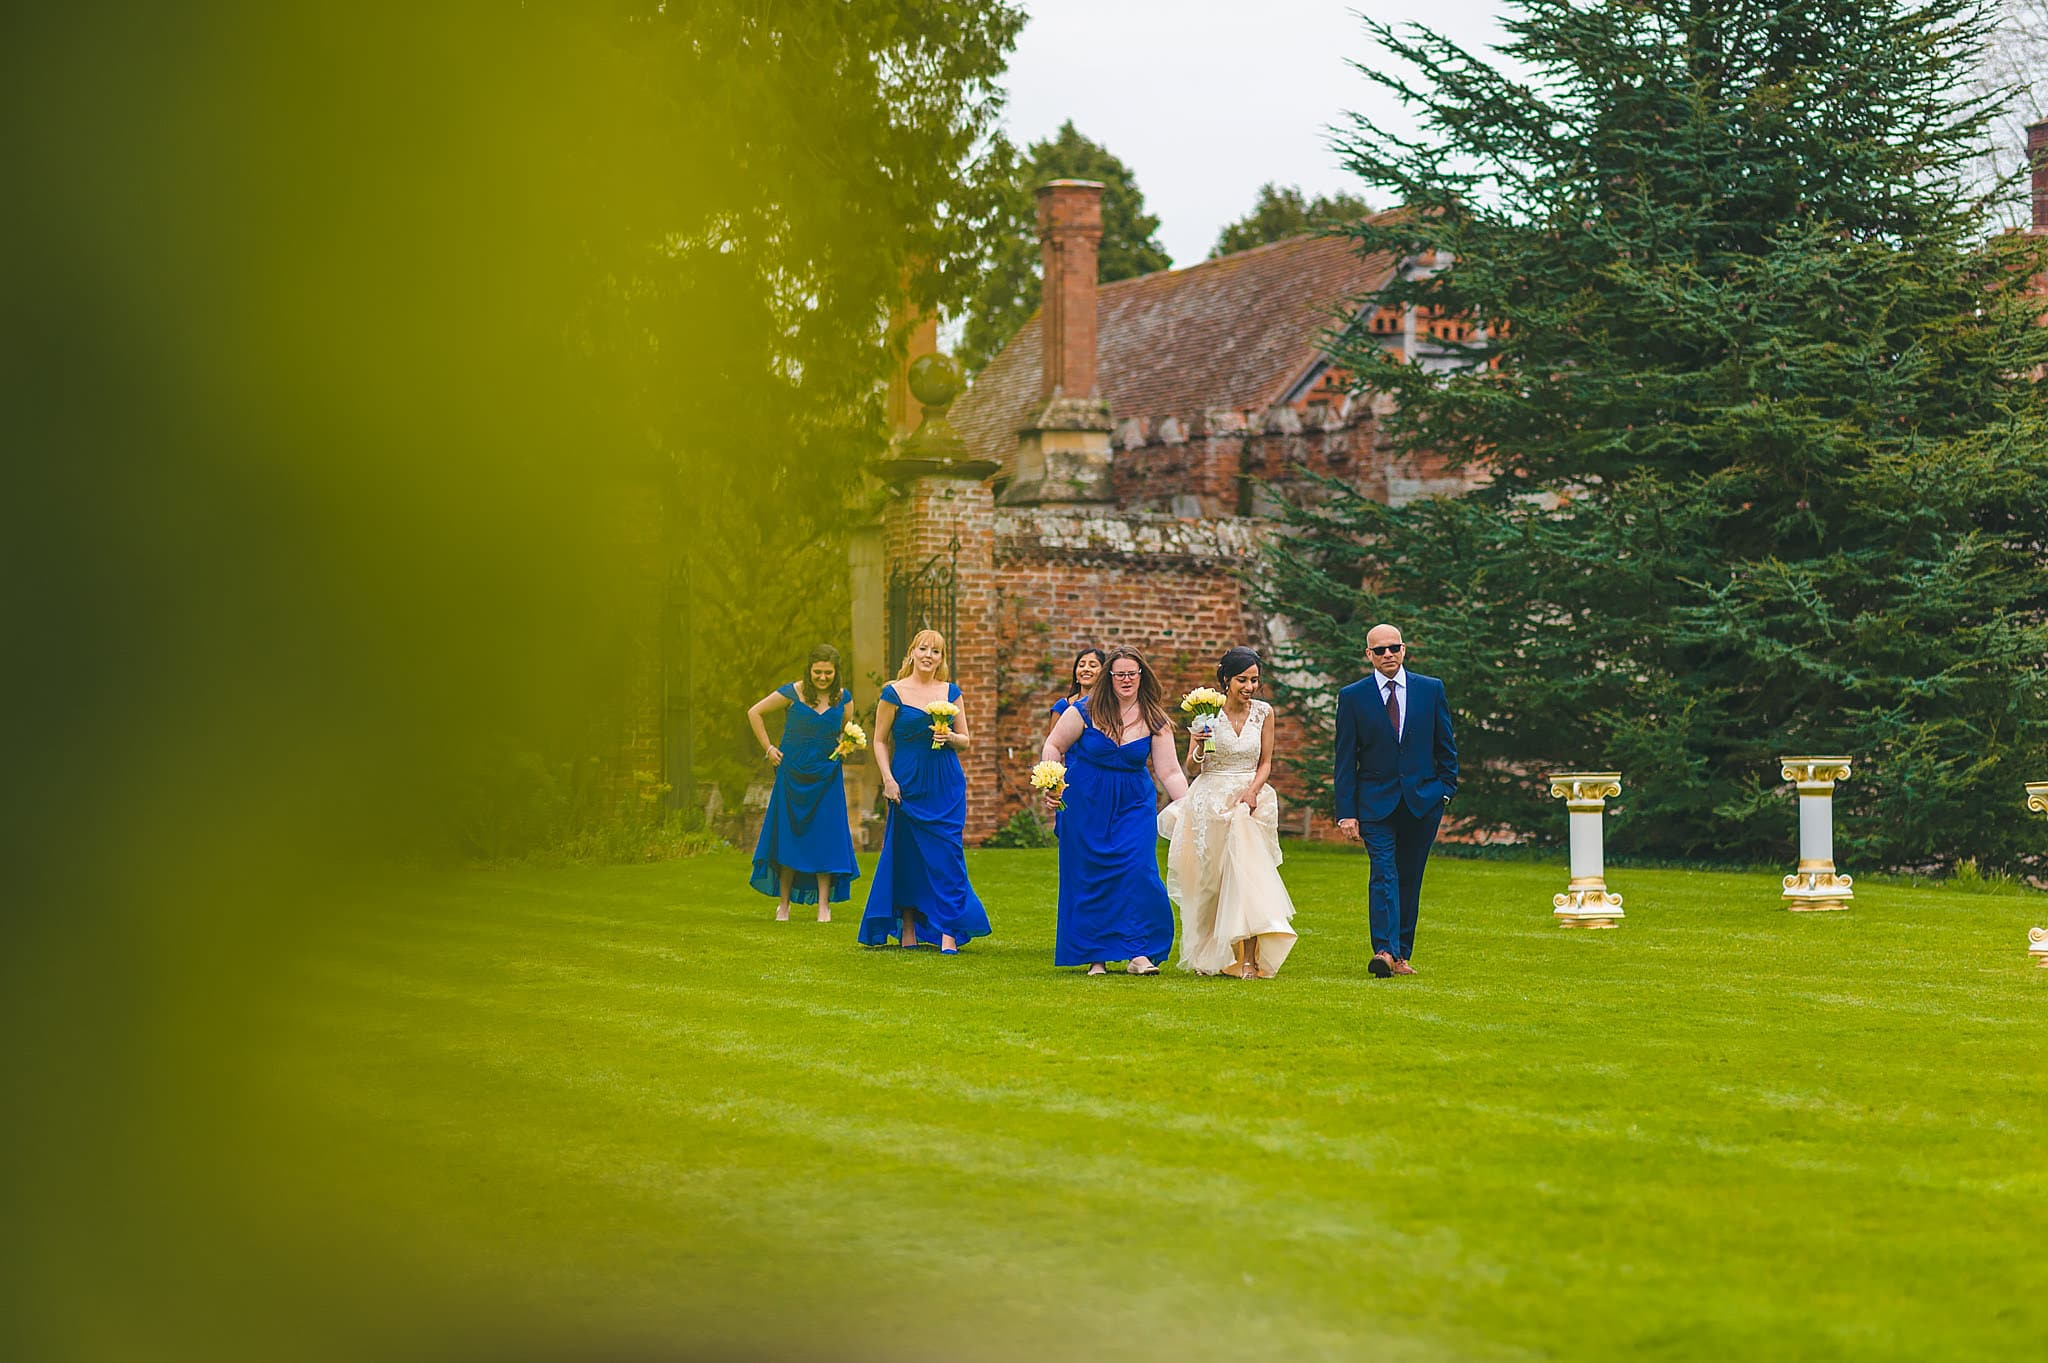 birtsmorton court wedding 39 - Sheena + Lee | Birtsmorton Court Wedding